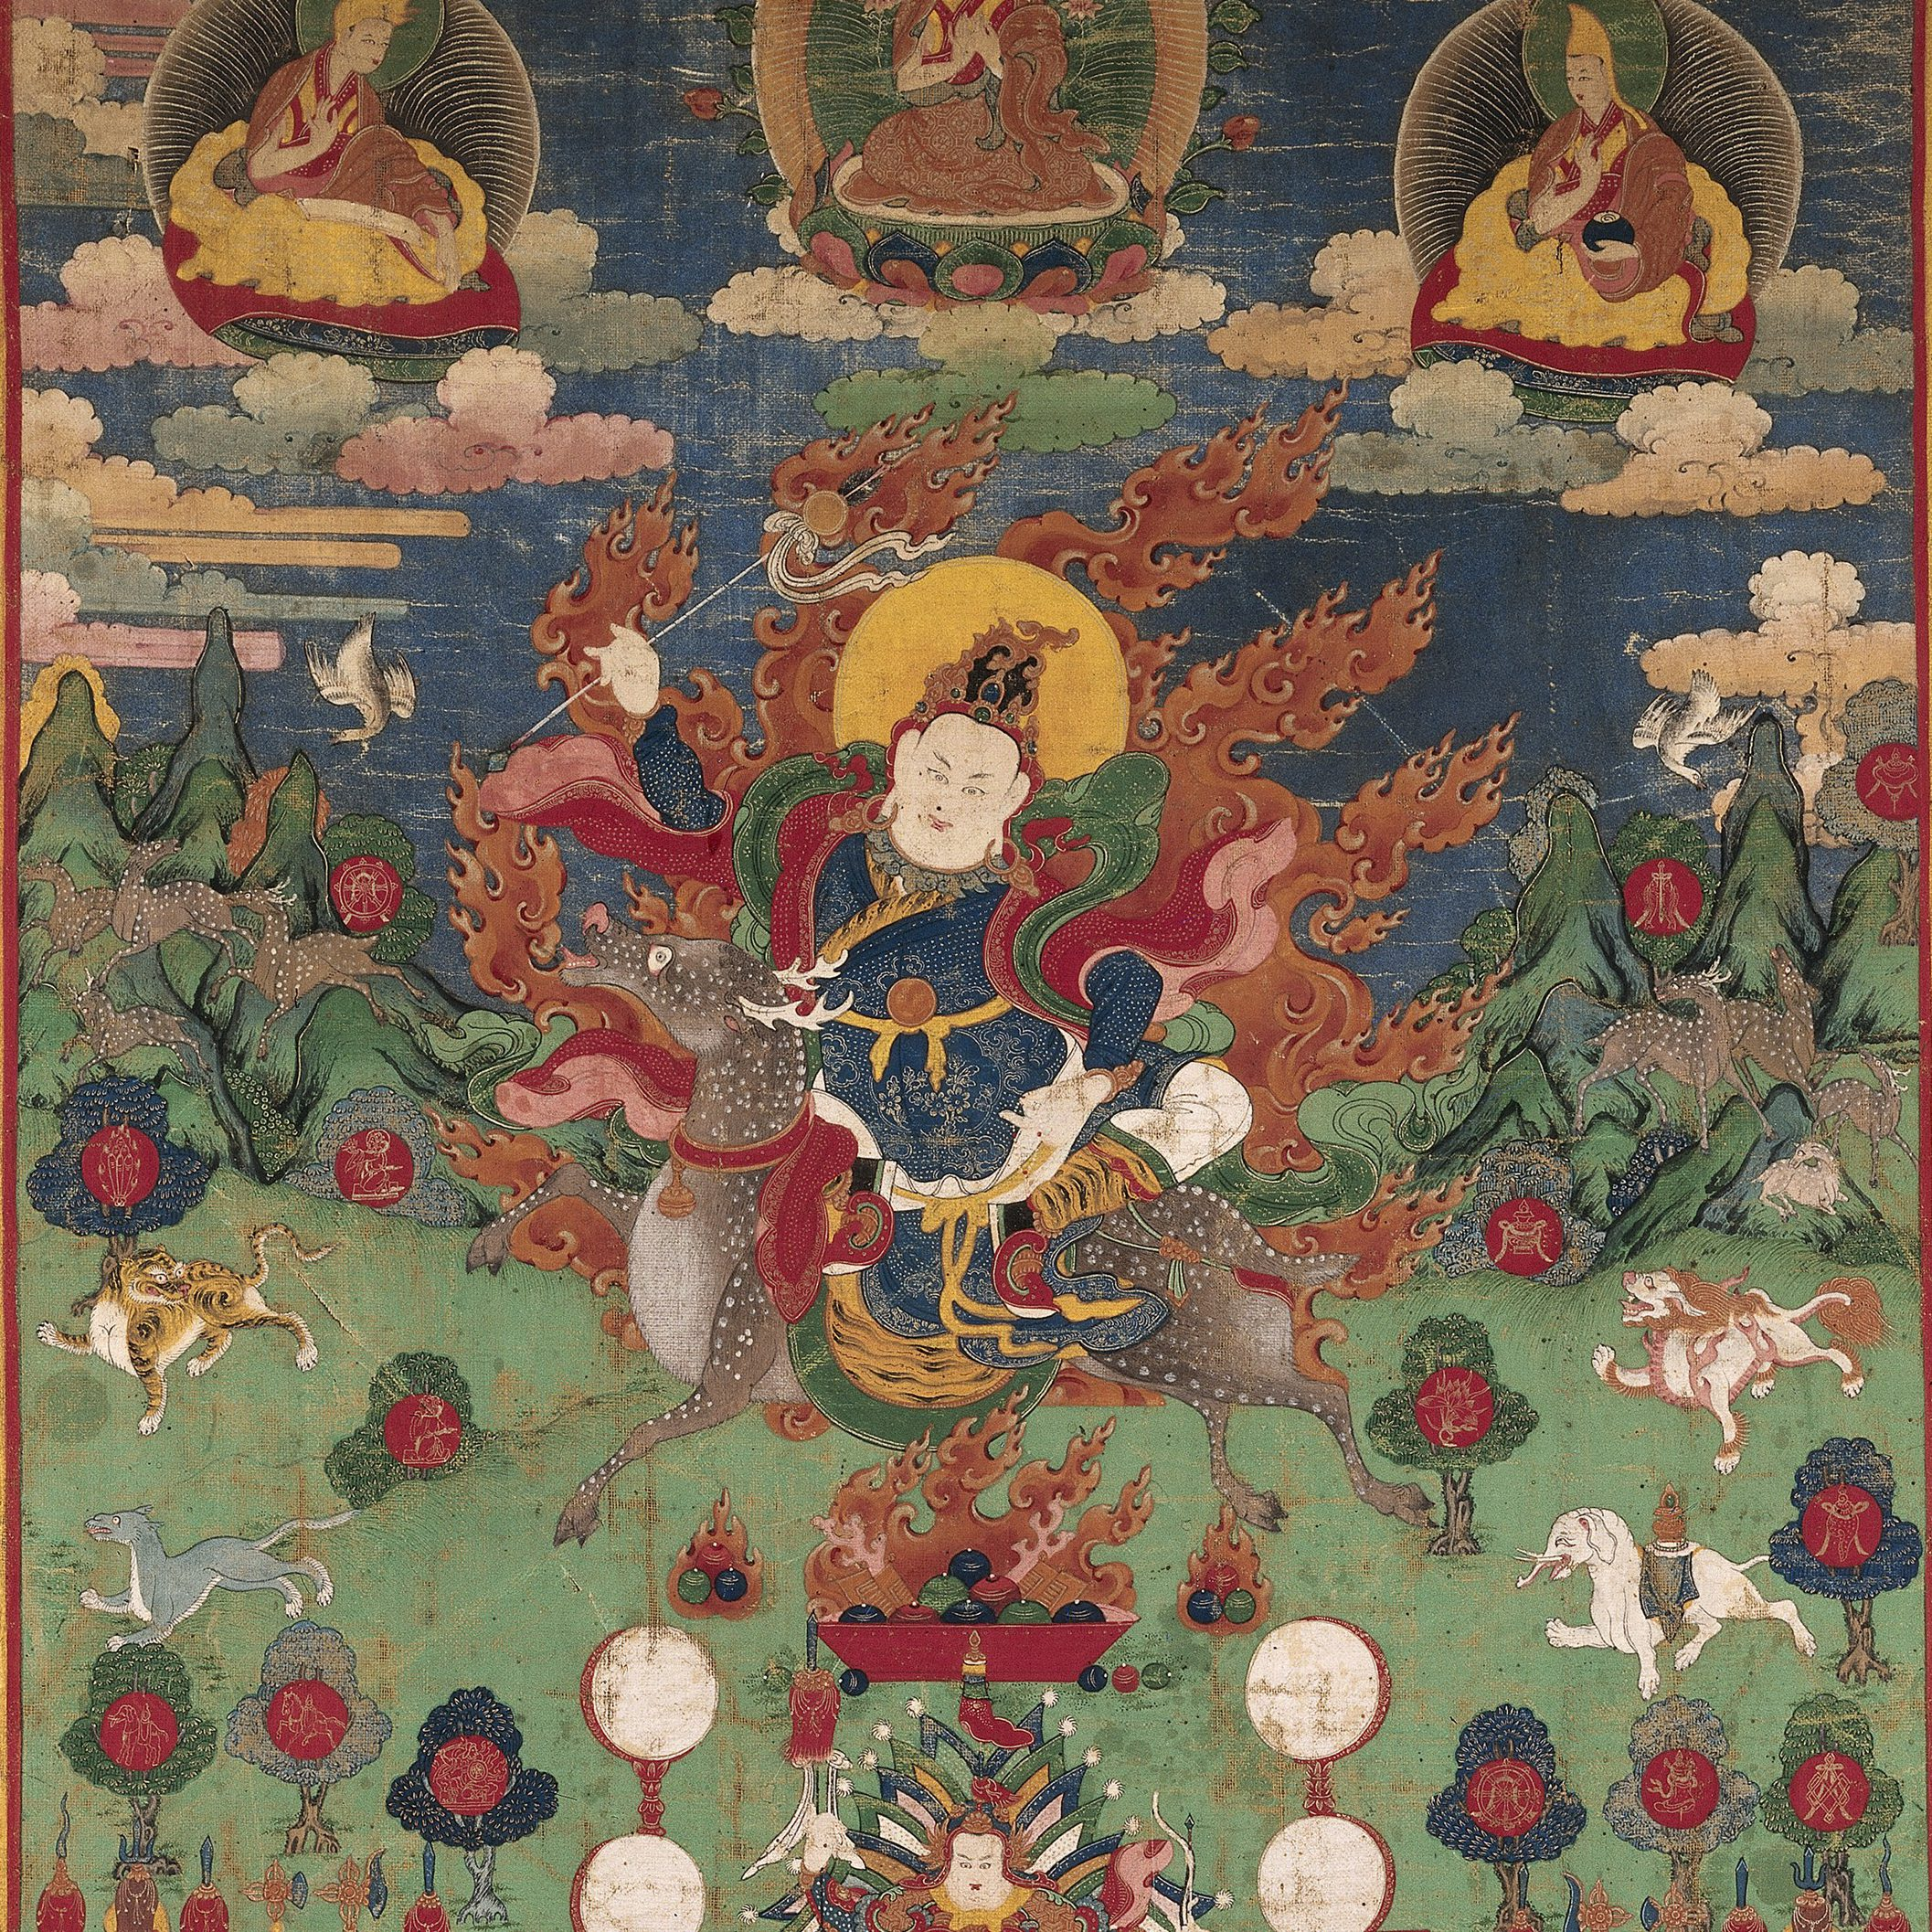 """""""The Epic of King Gesar"""": Tibet's Literary Treasure, Song of Central Asia"""